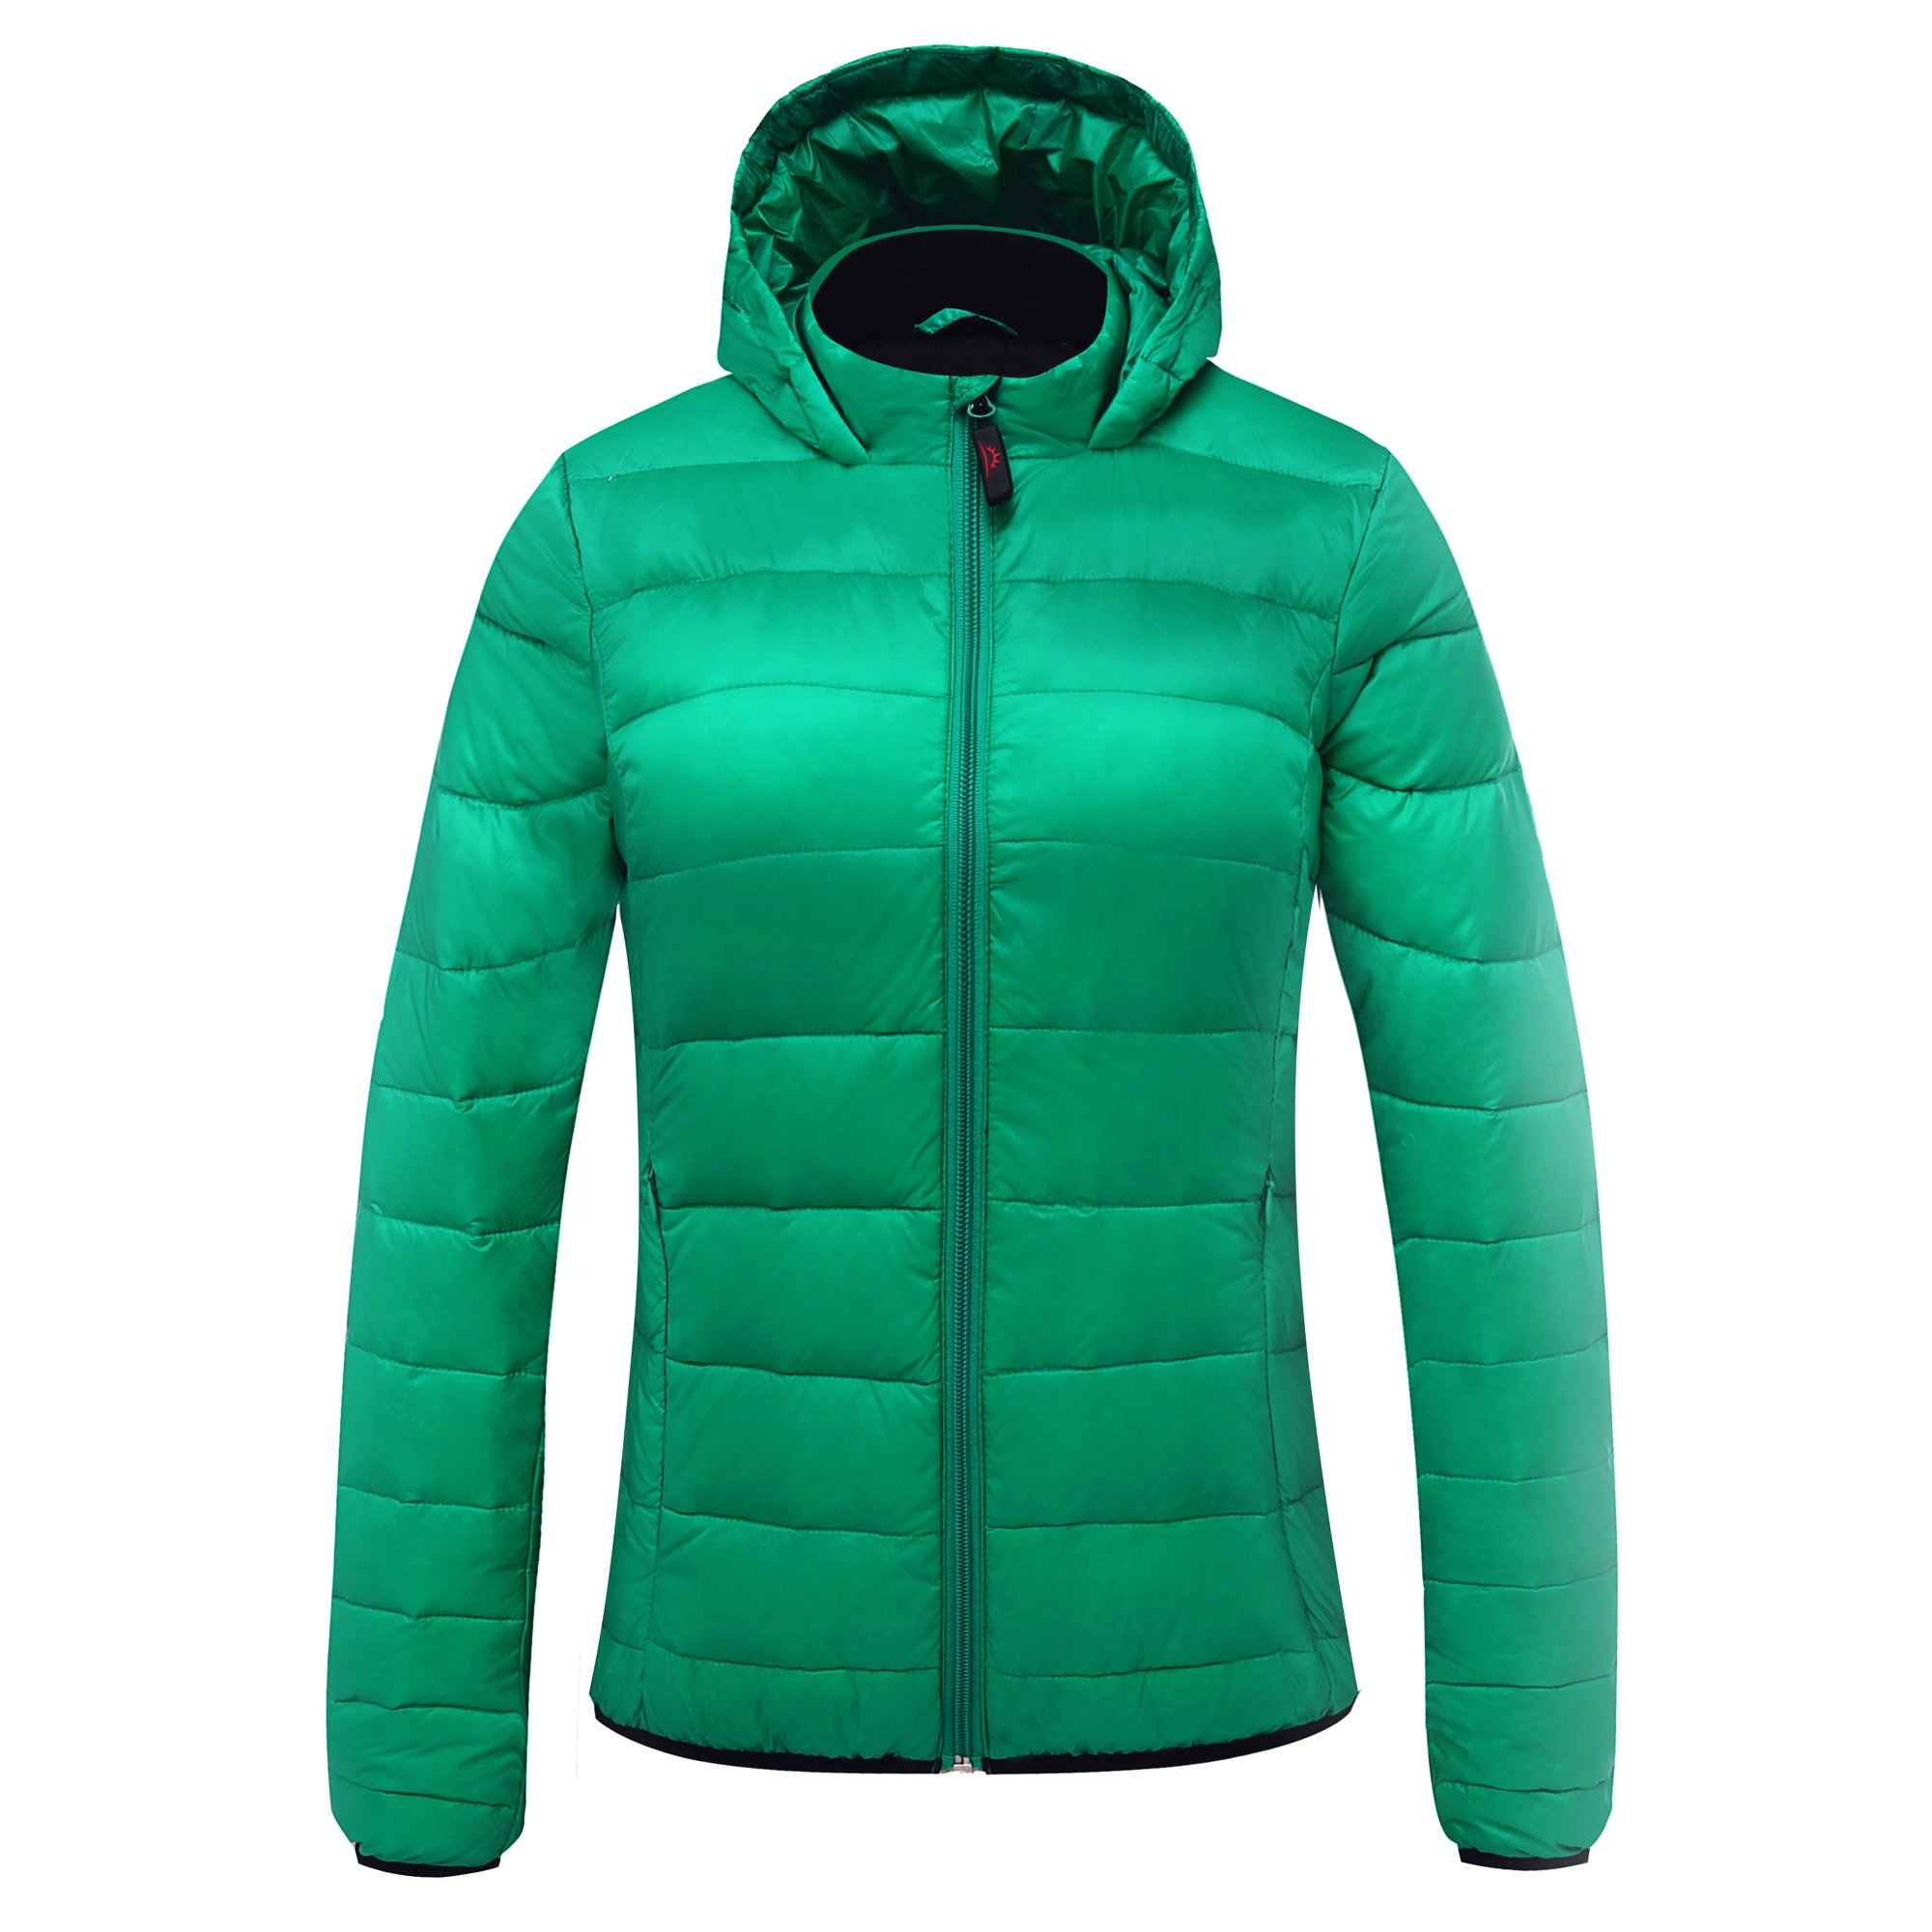 Cordless 5V 2A Women's Heated Jacket for Winter Outdoor Wear (S, Green Without 5000mAh PowerBank)